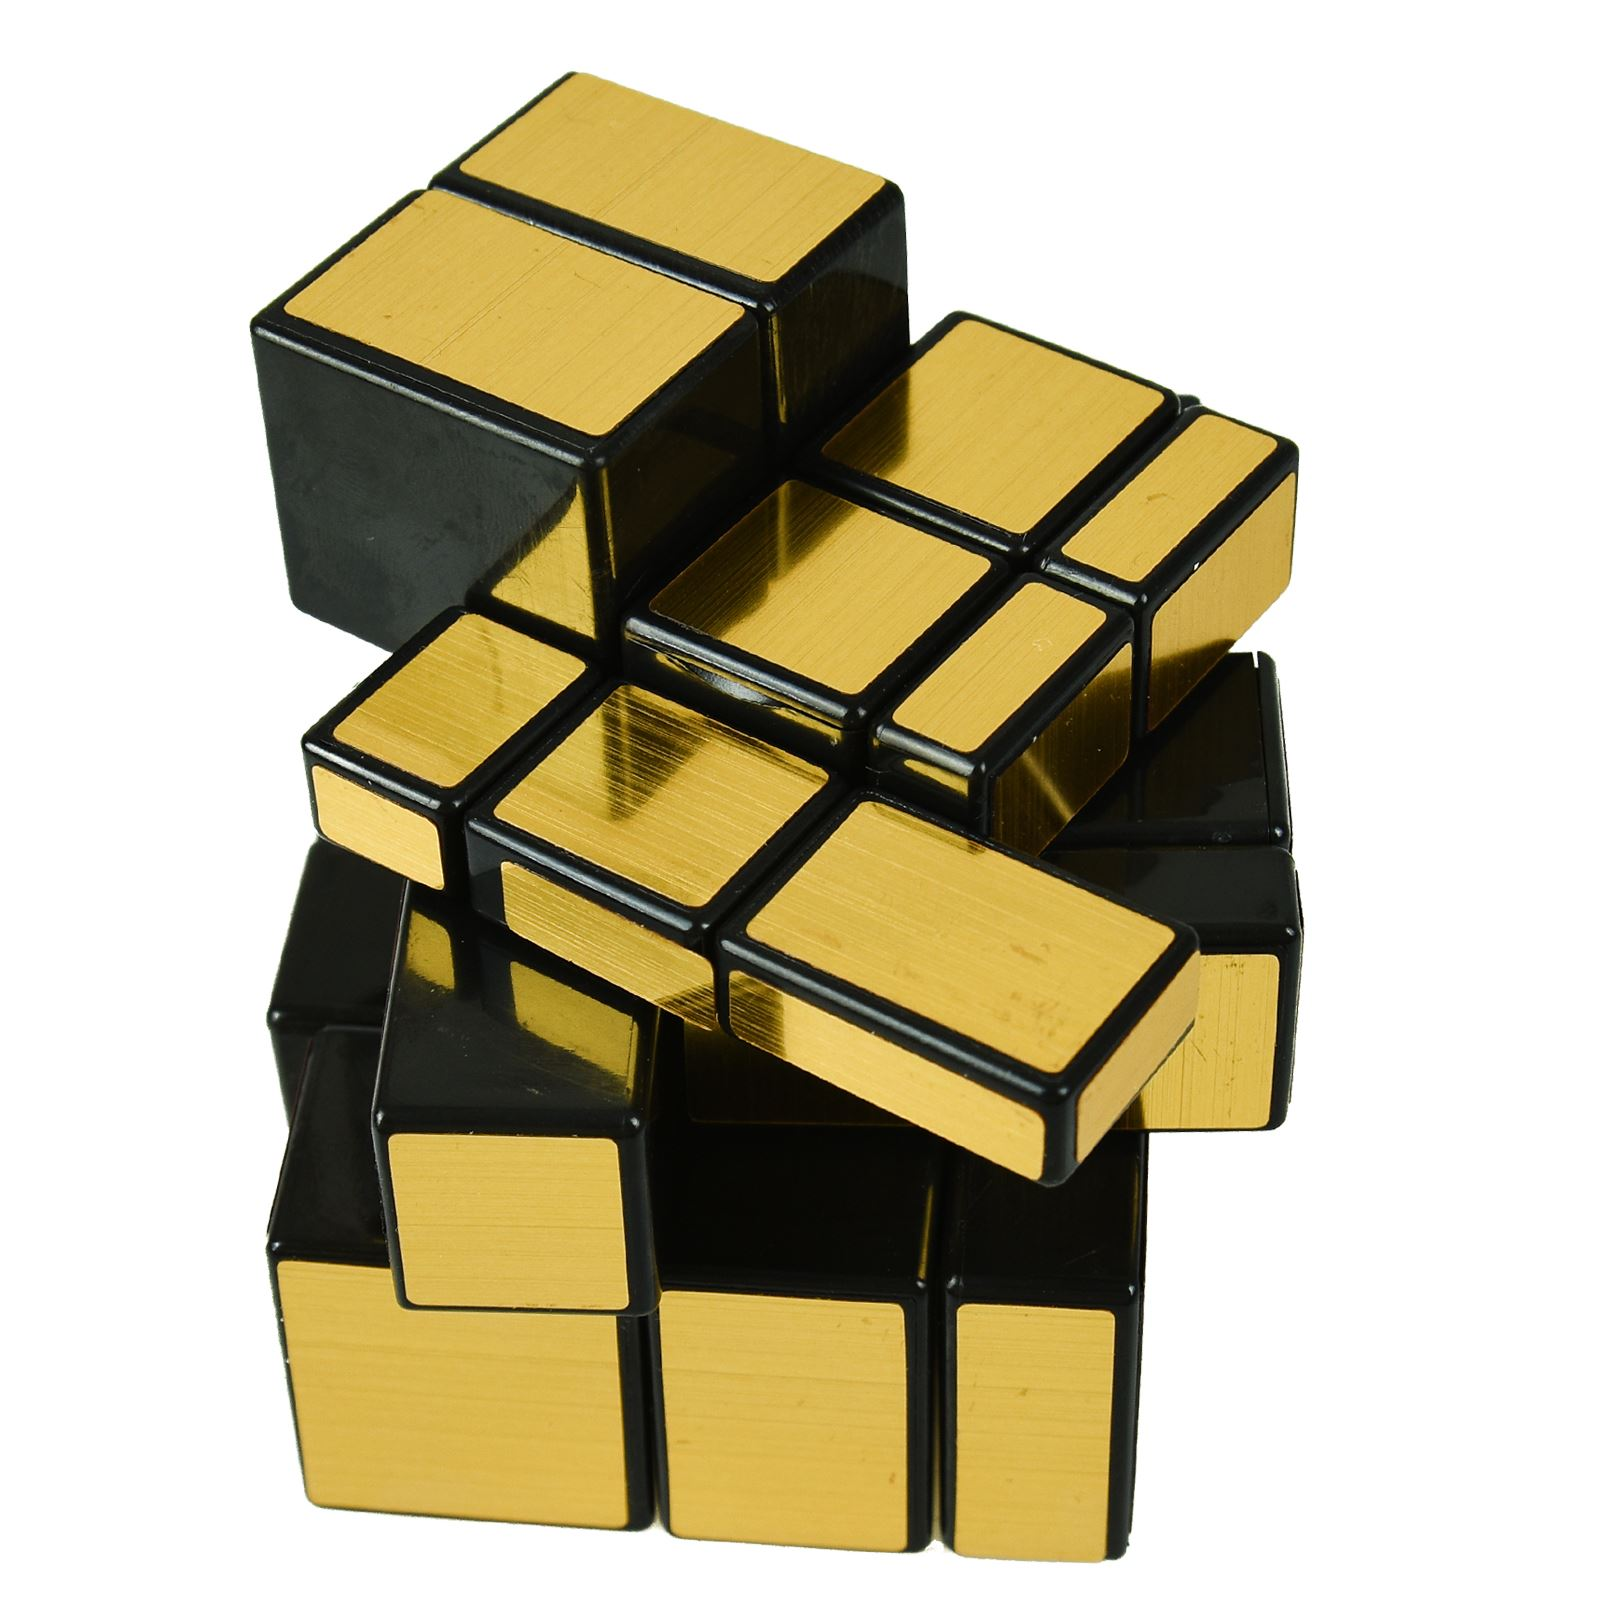 3x3-Miroir-Cube-Puzzle-Mind-Game-Brain-Teasers-Magic-scies-sauteuses-enfants-jouet-adulte-cadeau miniature 5